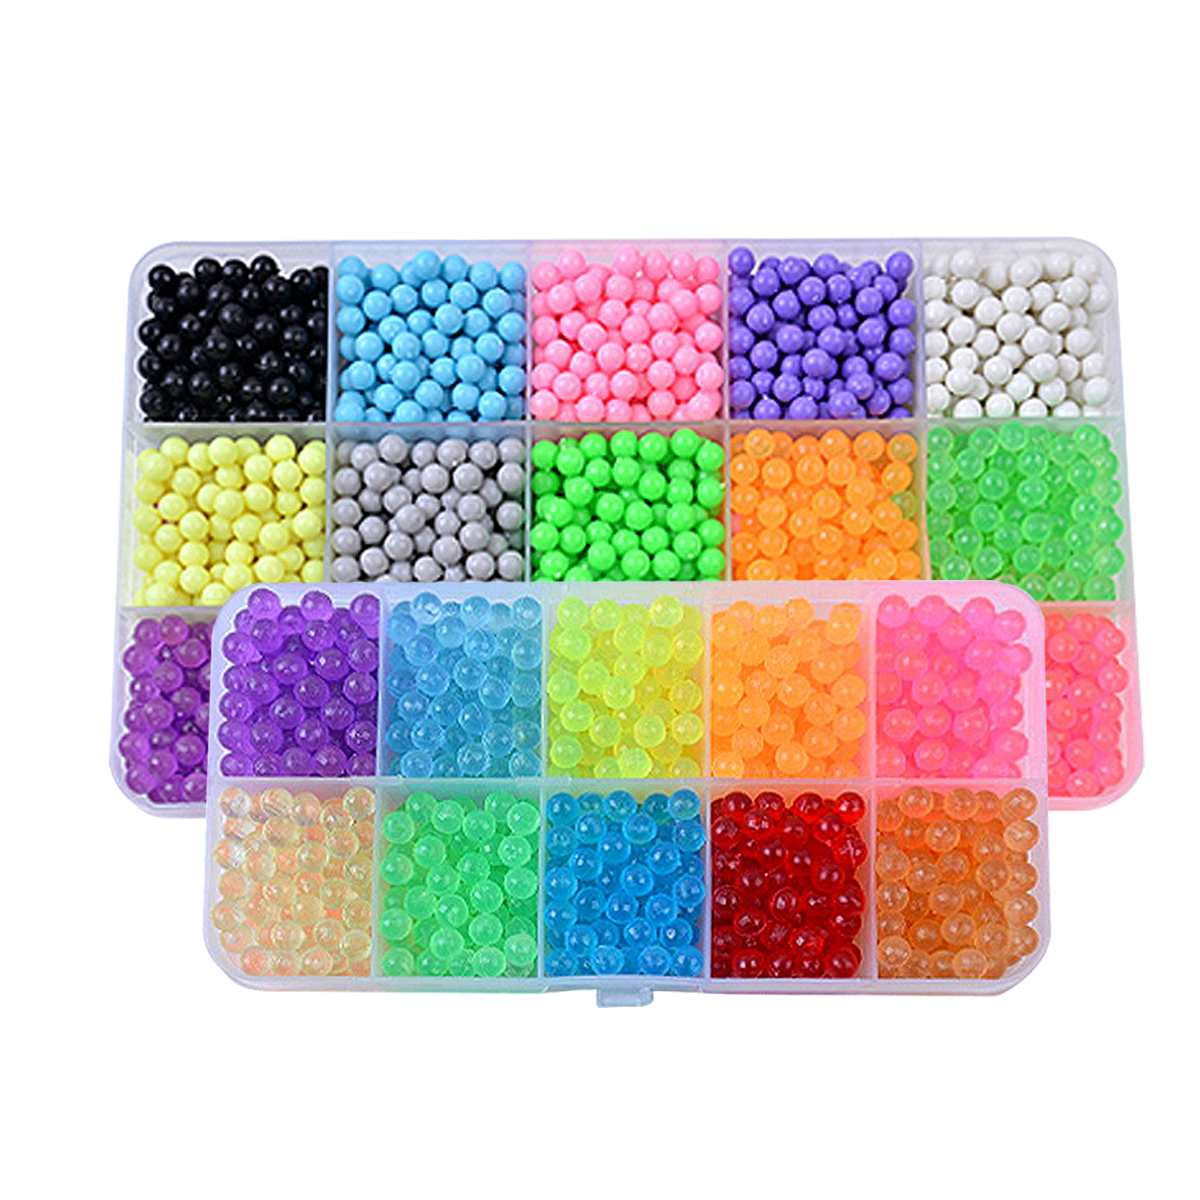 5200pcs Water Fog Bead Toy Set DIY Craft Animal Children Hand-adhesive Beads Puzzle Toy Multicolor